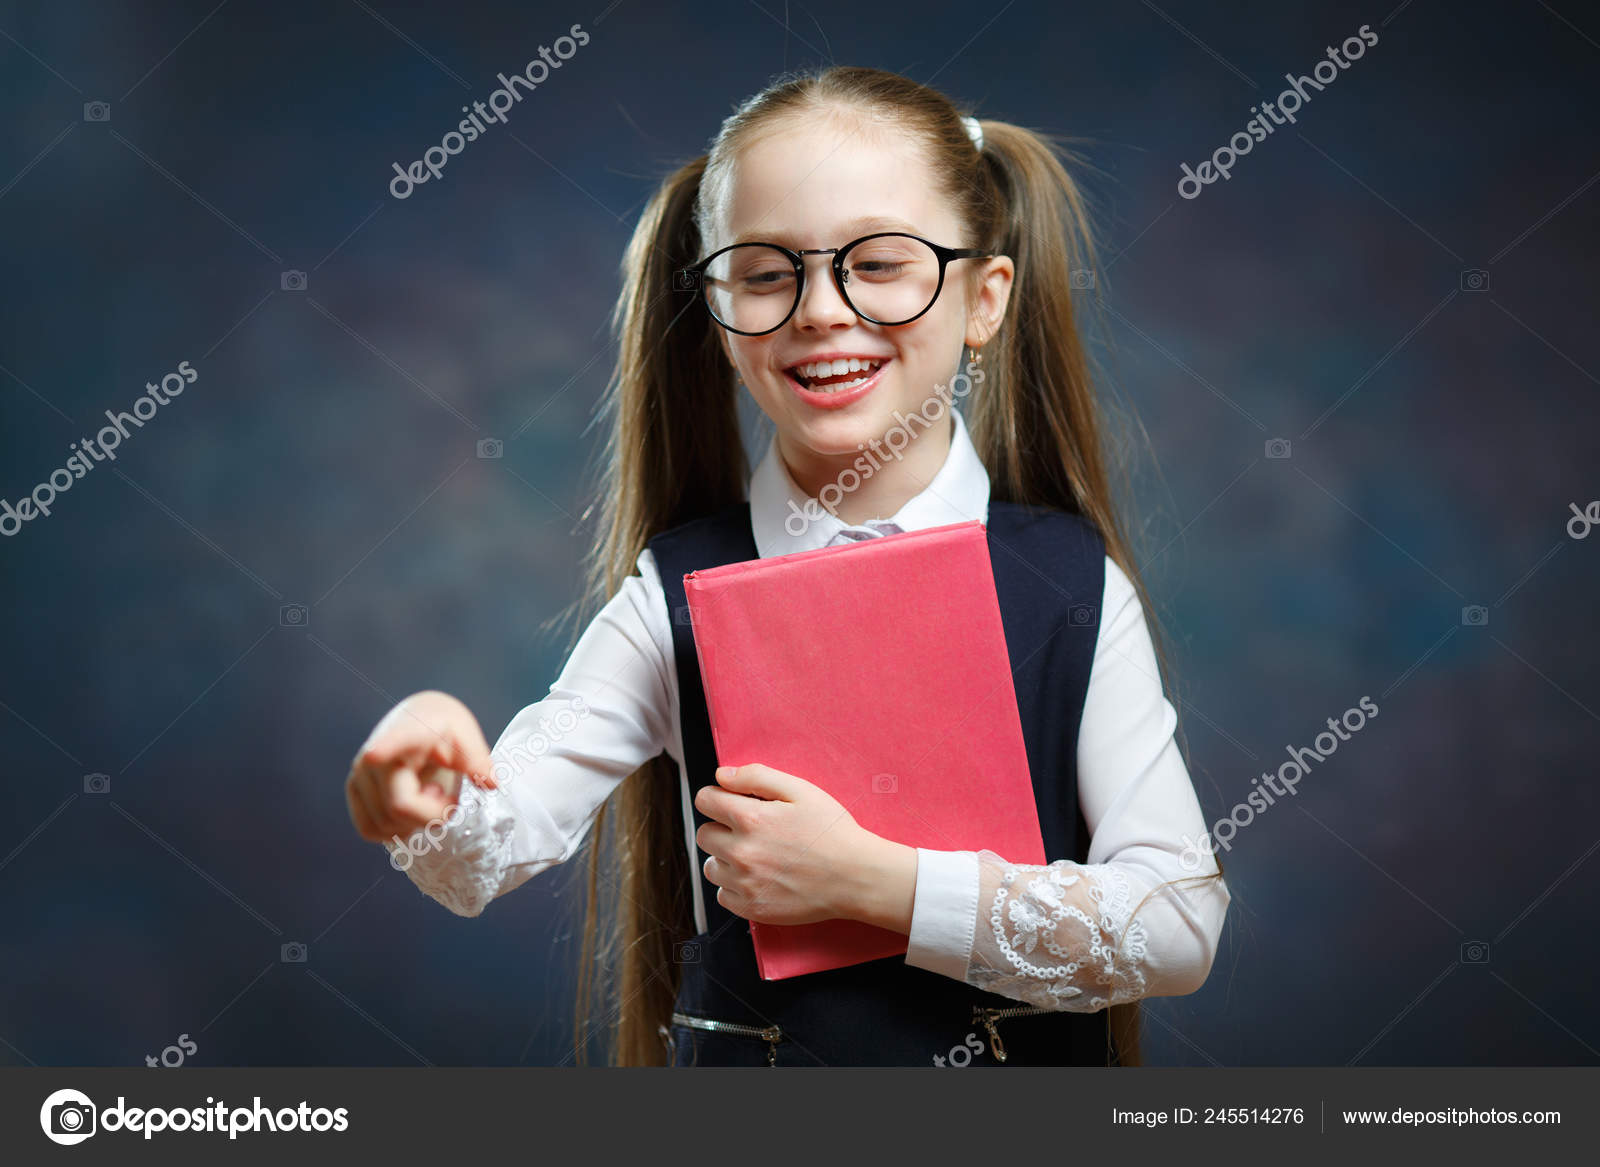 9aa0d1b3d455 Happy Little Schoolgirl in Uniform Hold Book Tight and Shows Finger At.  Cute Intelligent Girl Wear Big Glasses and Traditional Black and White  Outfit.